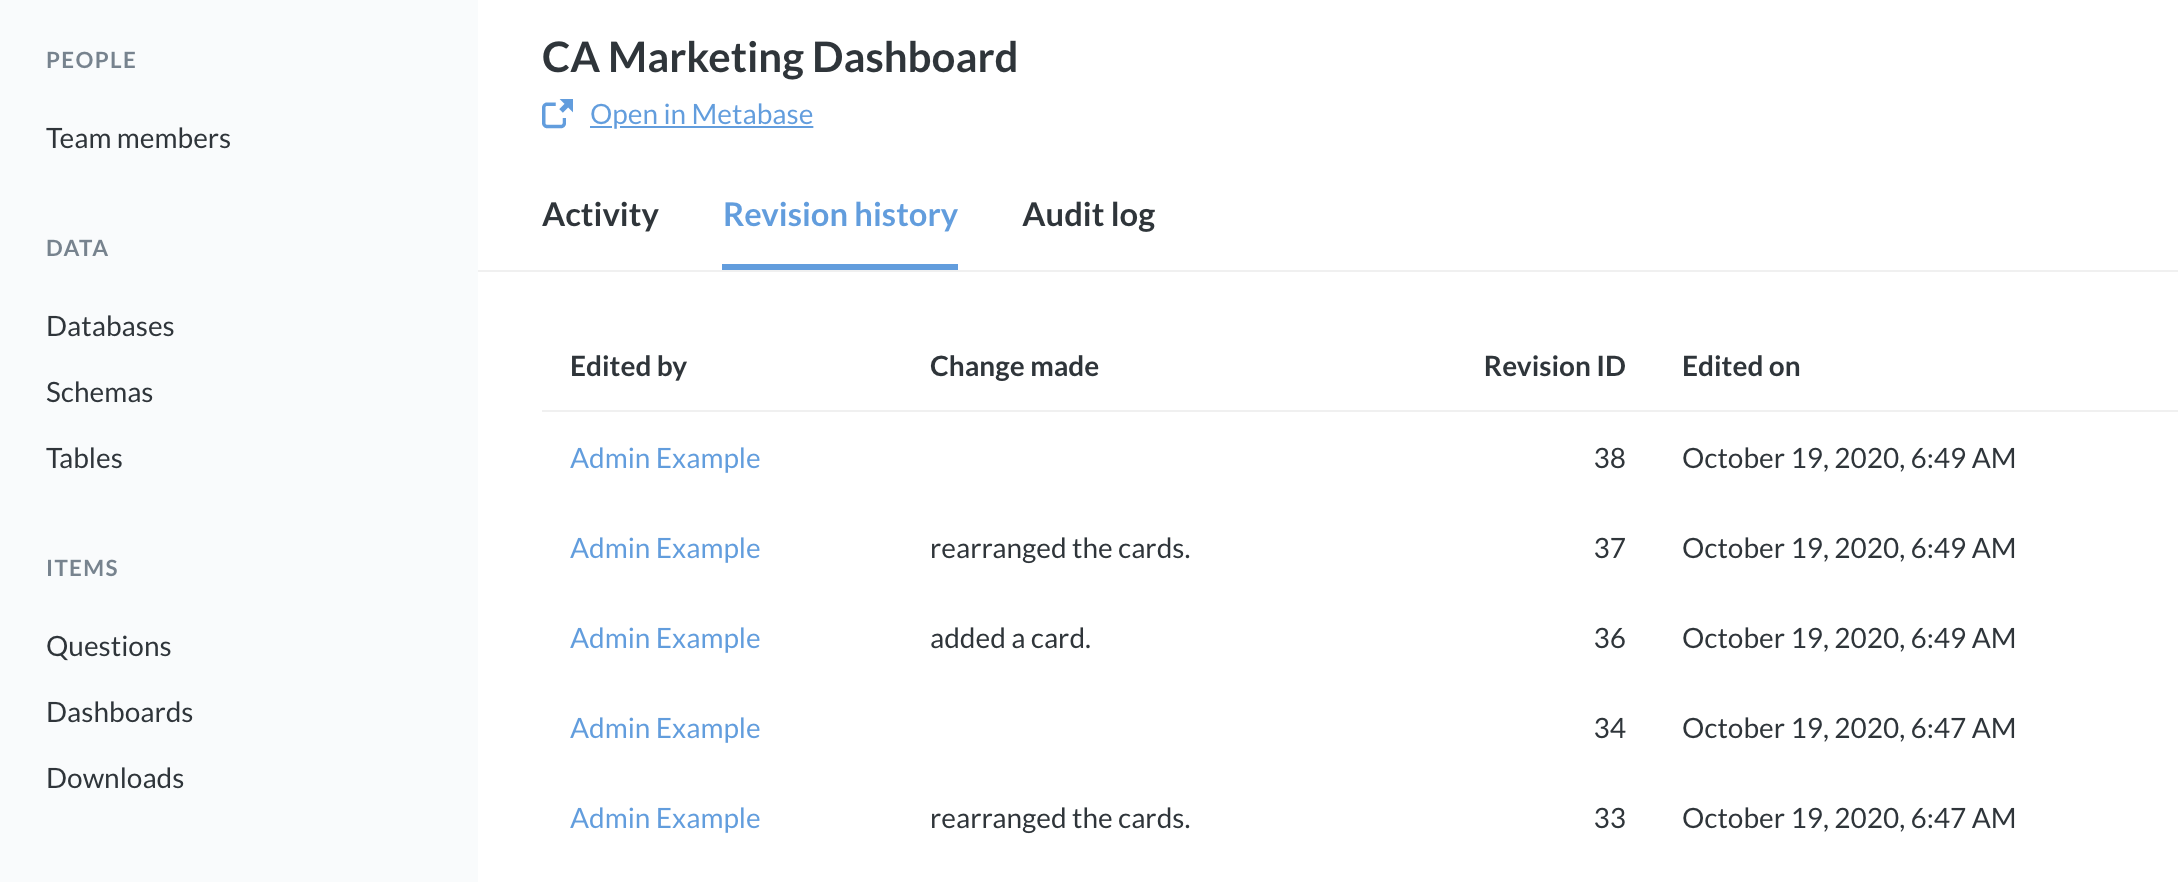 <em>Fig. 11.</em> The revision history for the CA Marketing Dashboard.